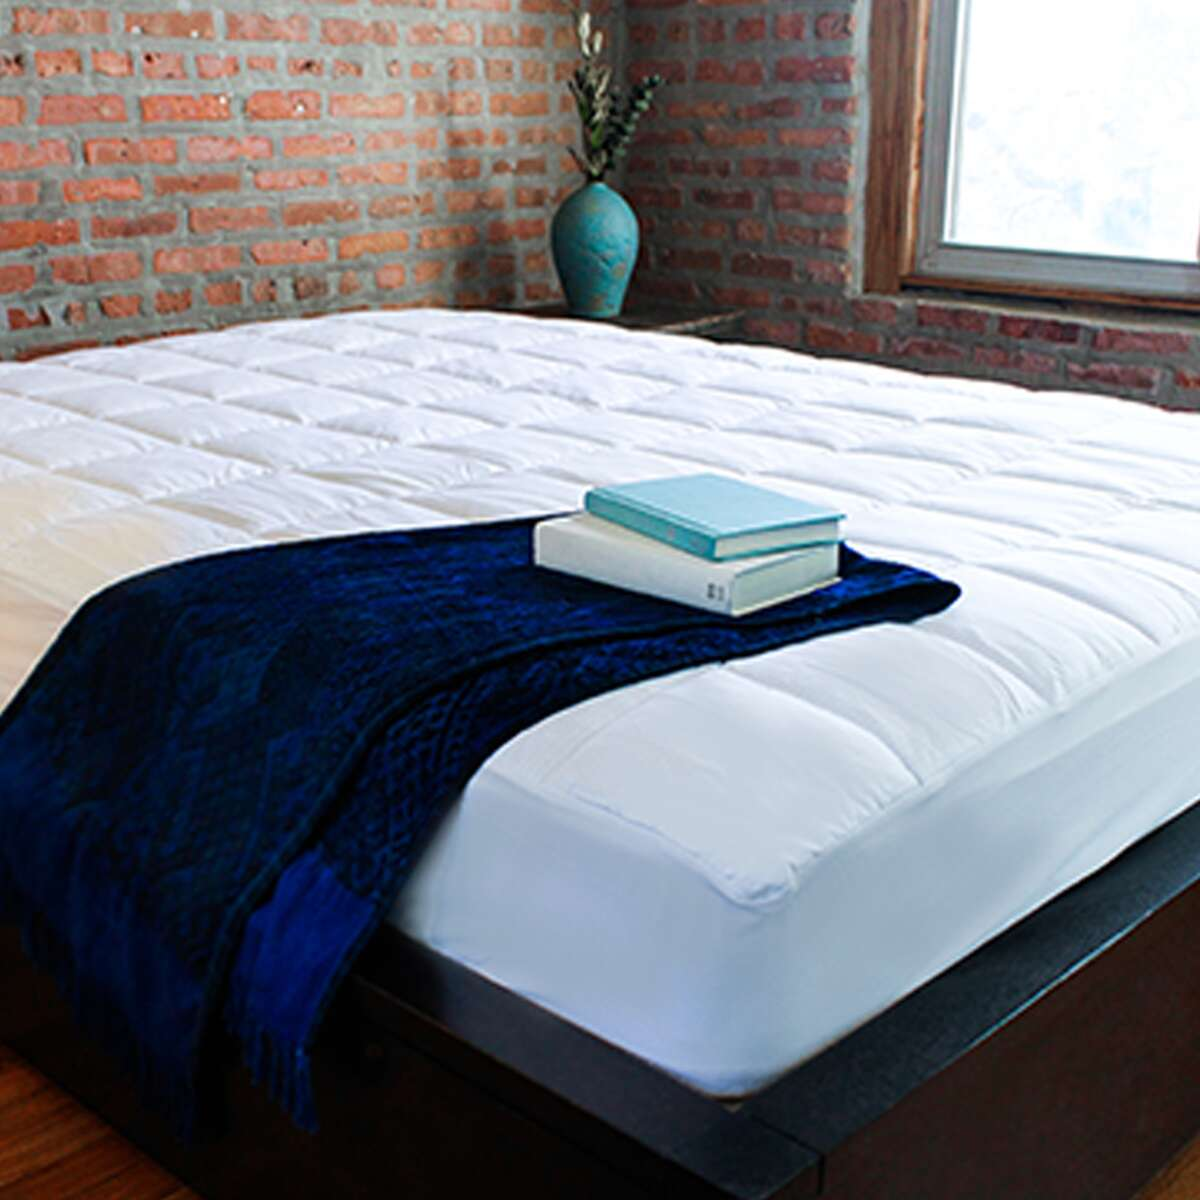 Best Overall Cooling Mattress Pad Nacreous Mattress Pad SlumberCloud slumbercloud.com $139.00 SlumberCloud offers a traditional style mattress pad that goes on your mattress like a fitted sheet, but also uses Outlast technology to keep you cool. Outlast absorbs heat when you get overheated and releases it when you are too cold, preventing night sweats in the first place. Using a mix of Outlast viscose and cotton fabric on the top, it has a soft feel while the pad is made of Lyocell to wick away moisture for extra cooling. We love that this style comes in multiple colors, too.